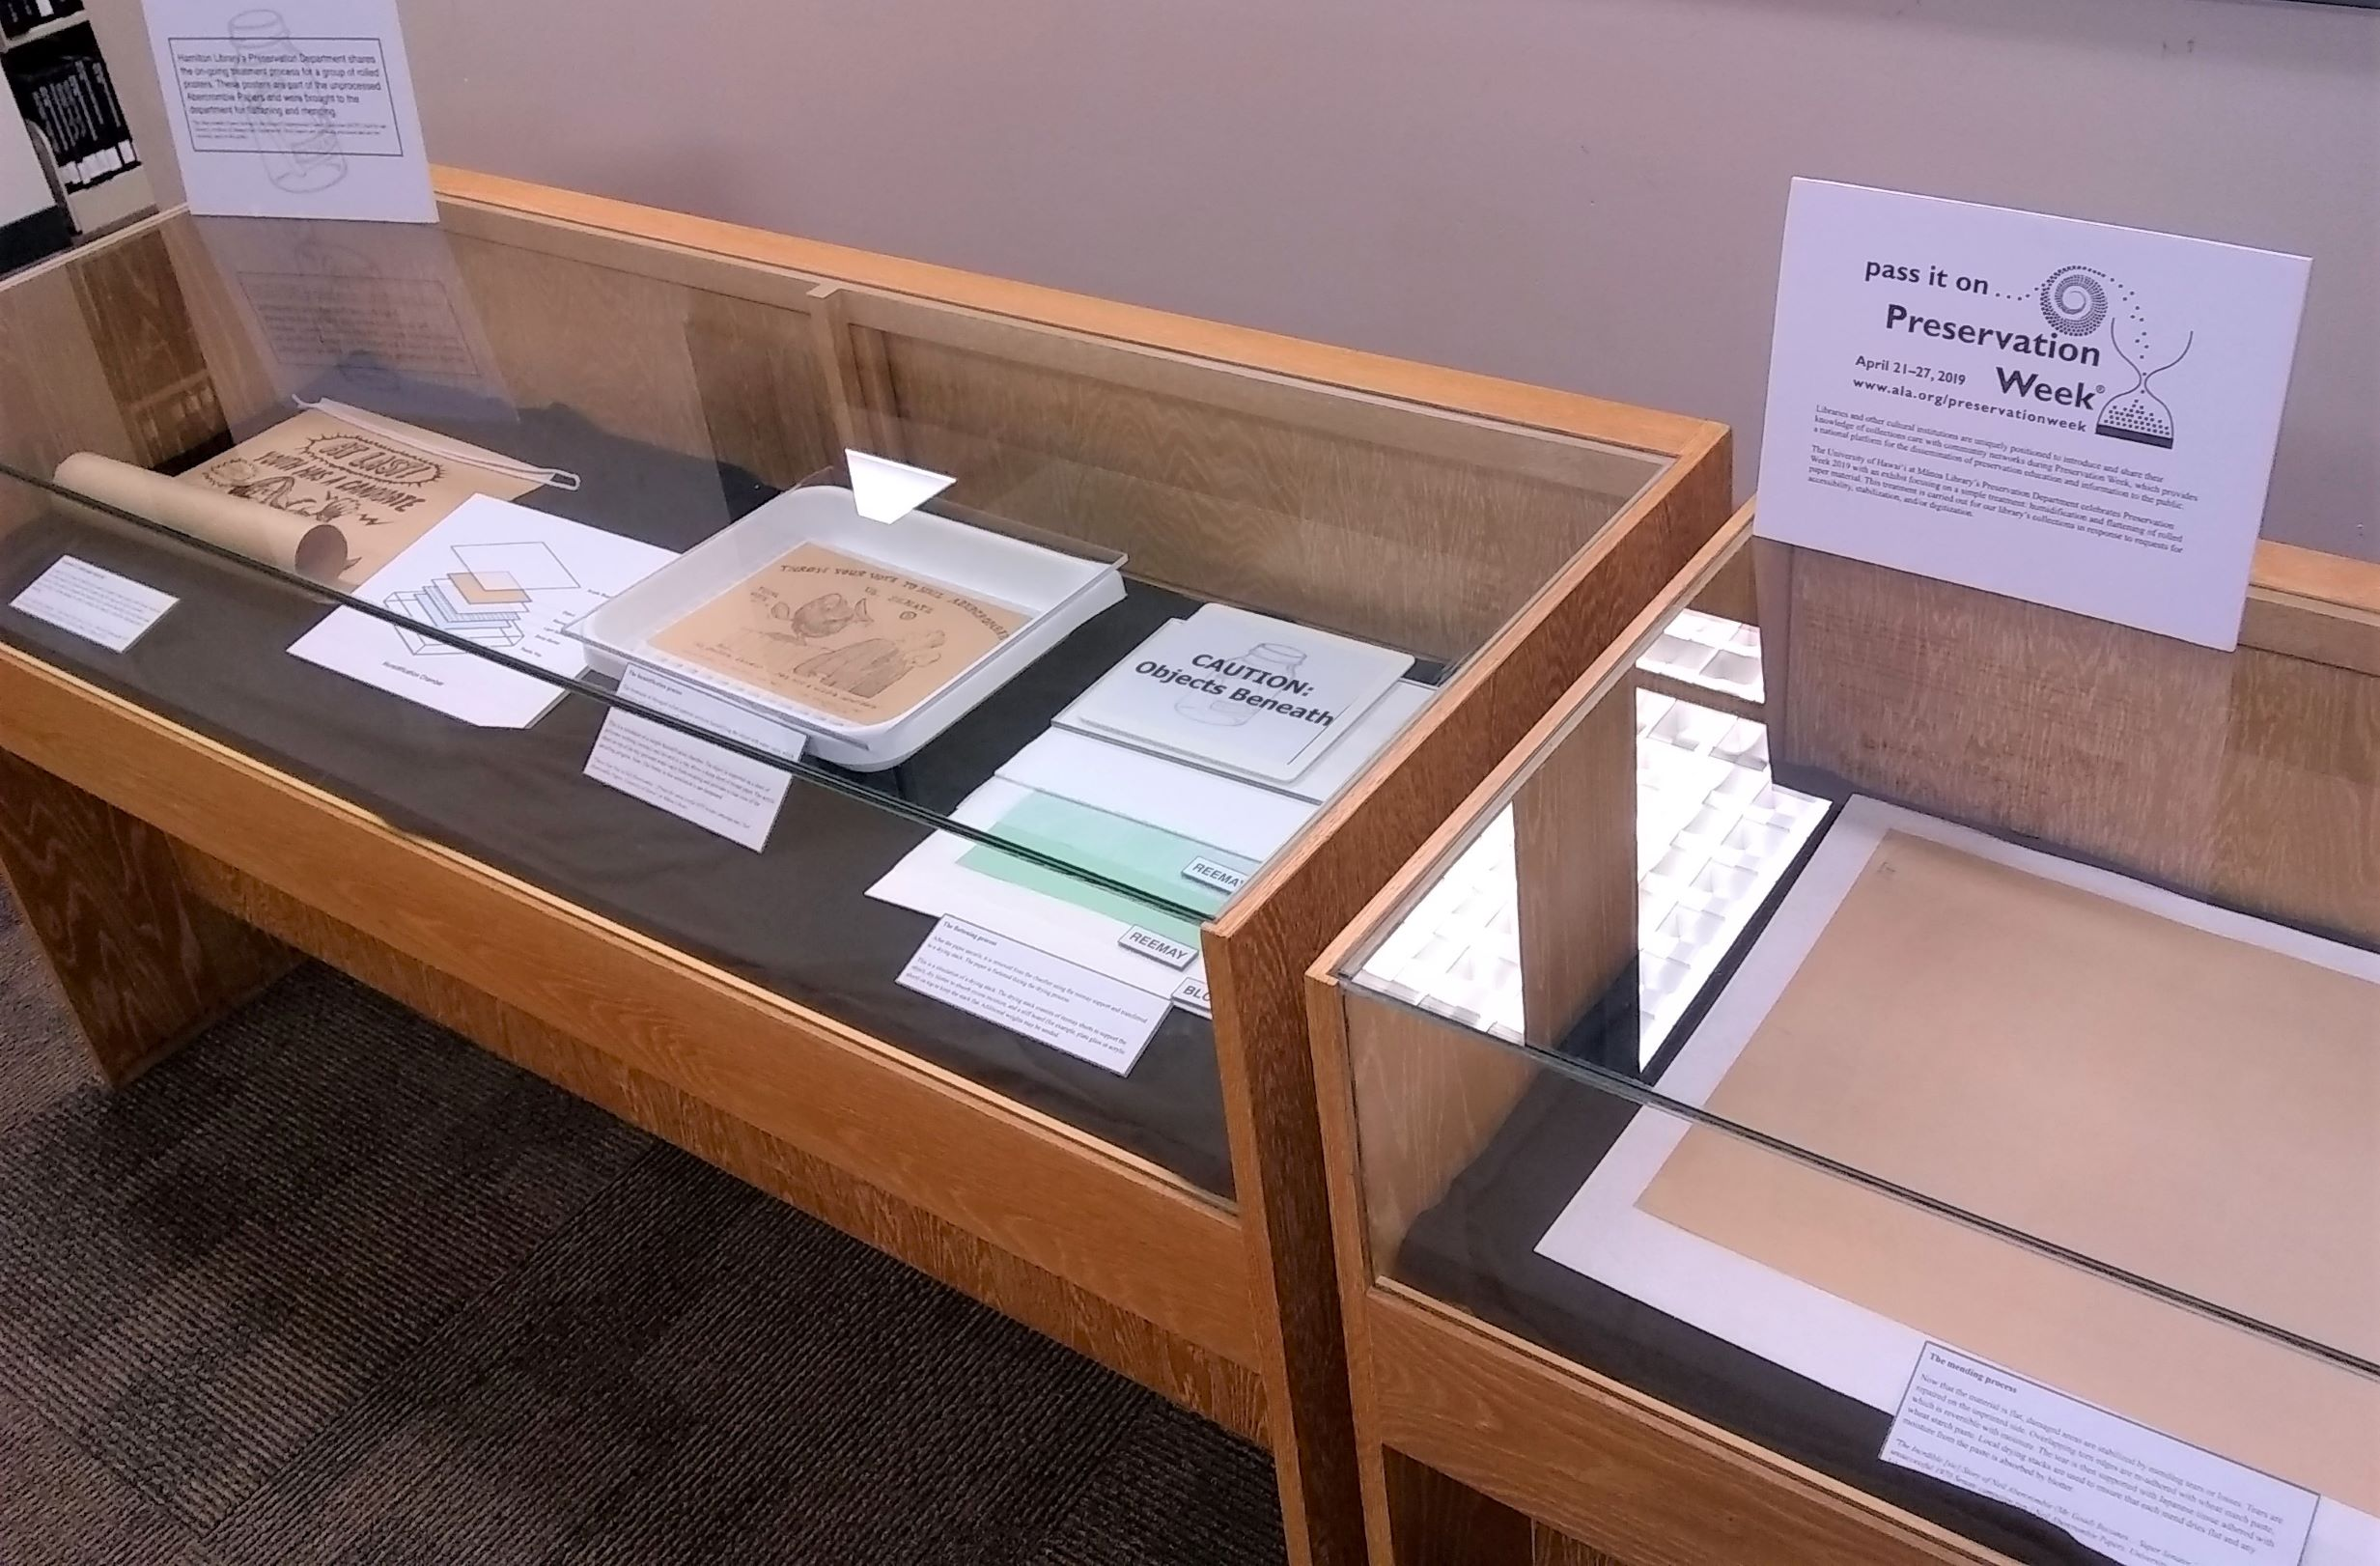 Display case for preservation week exhibit showing the process of unrolling paper.